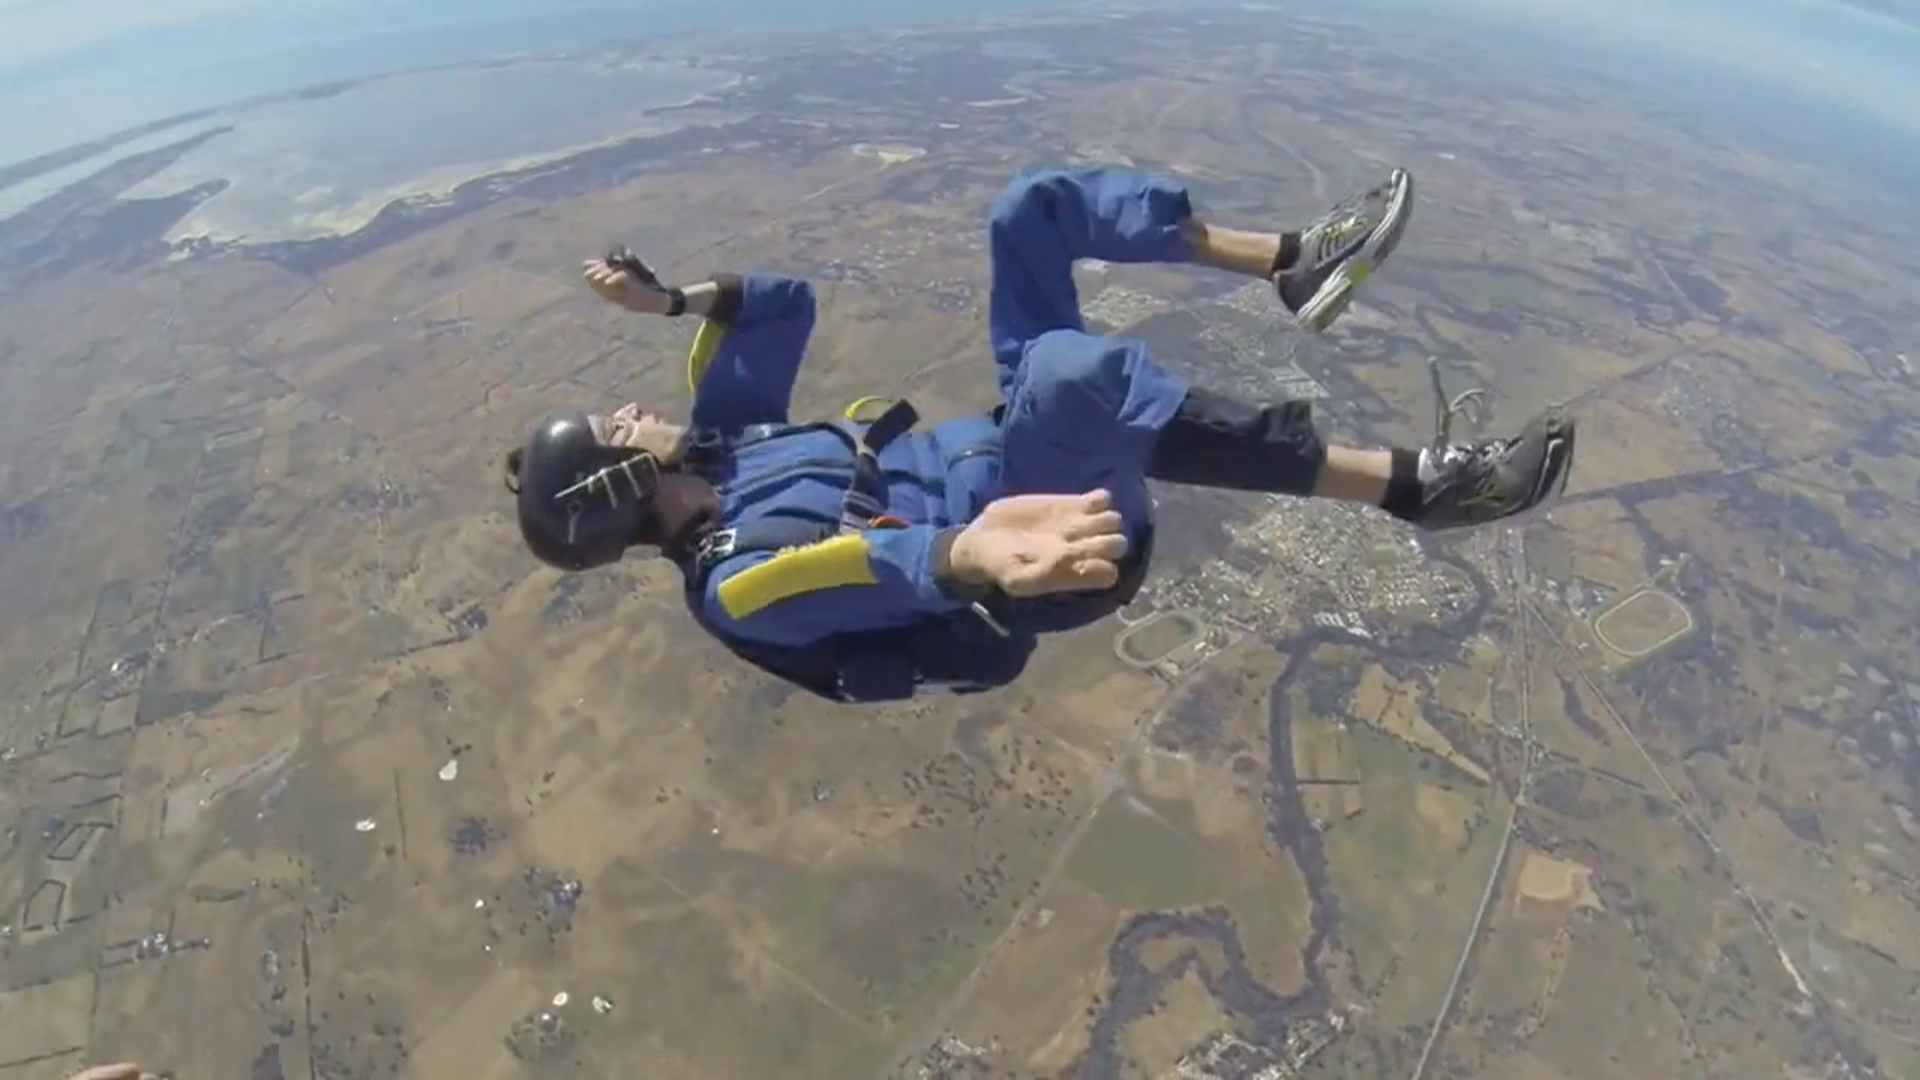 f_skydiving_seizure_150301